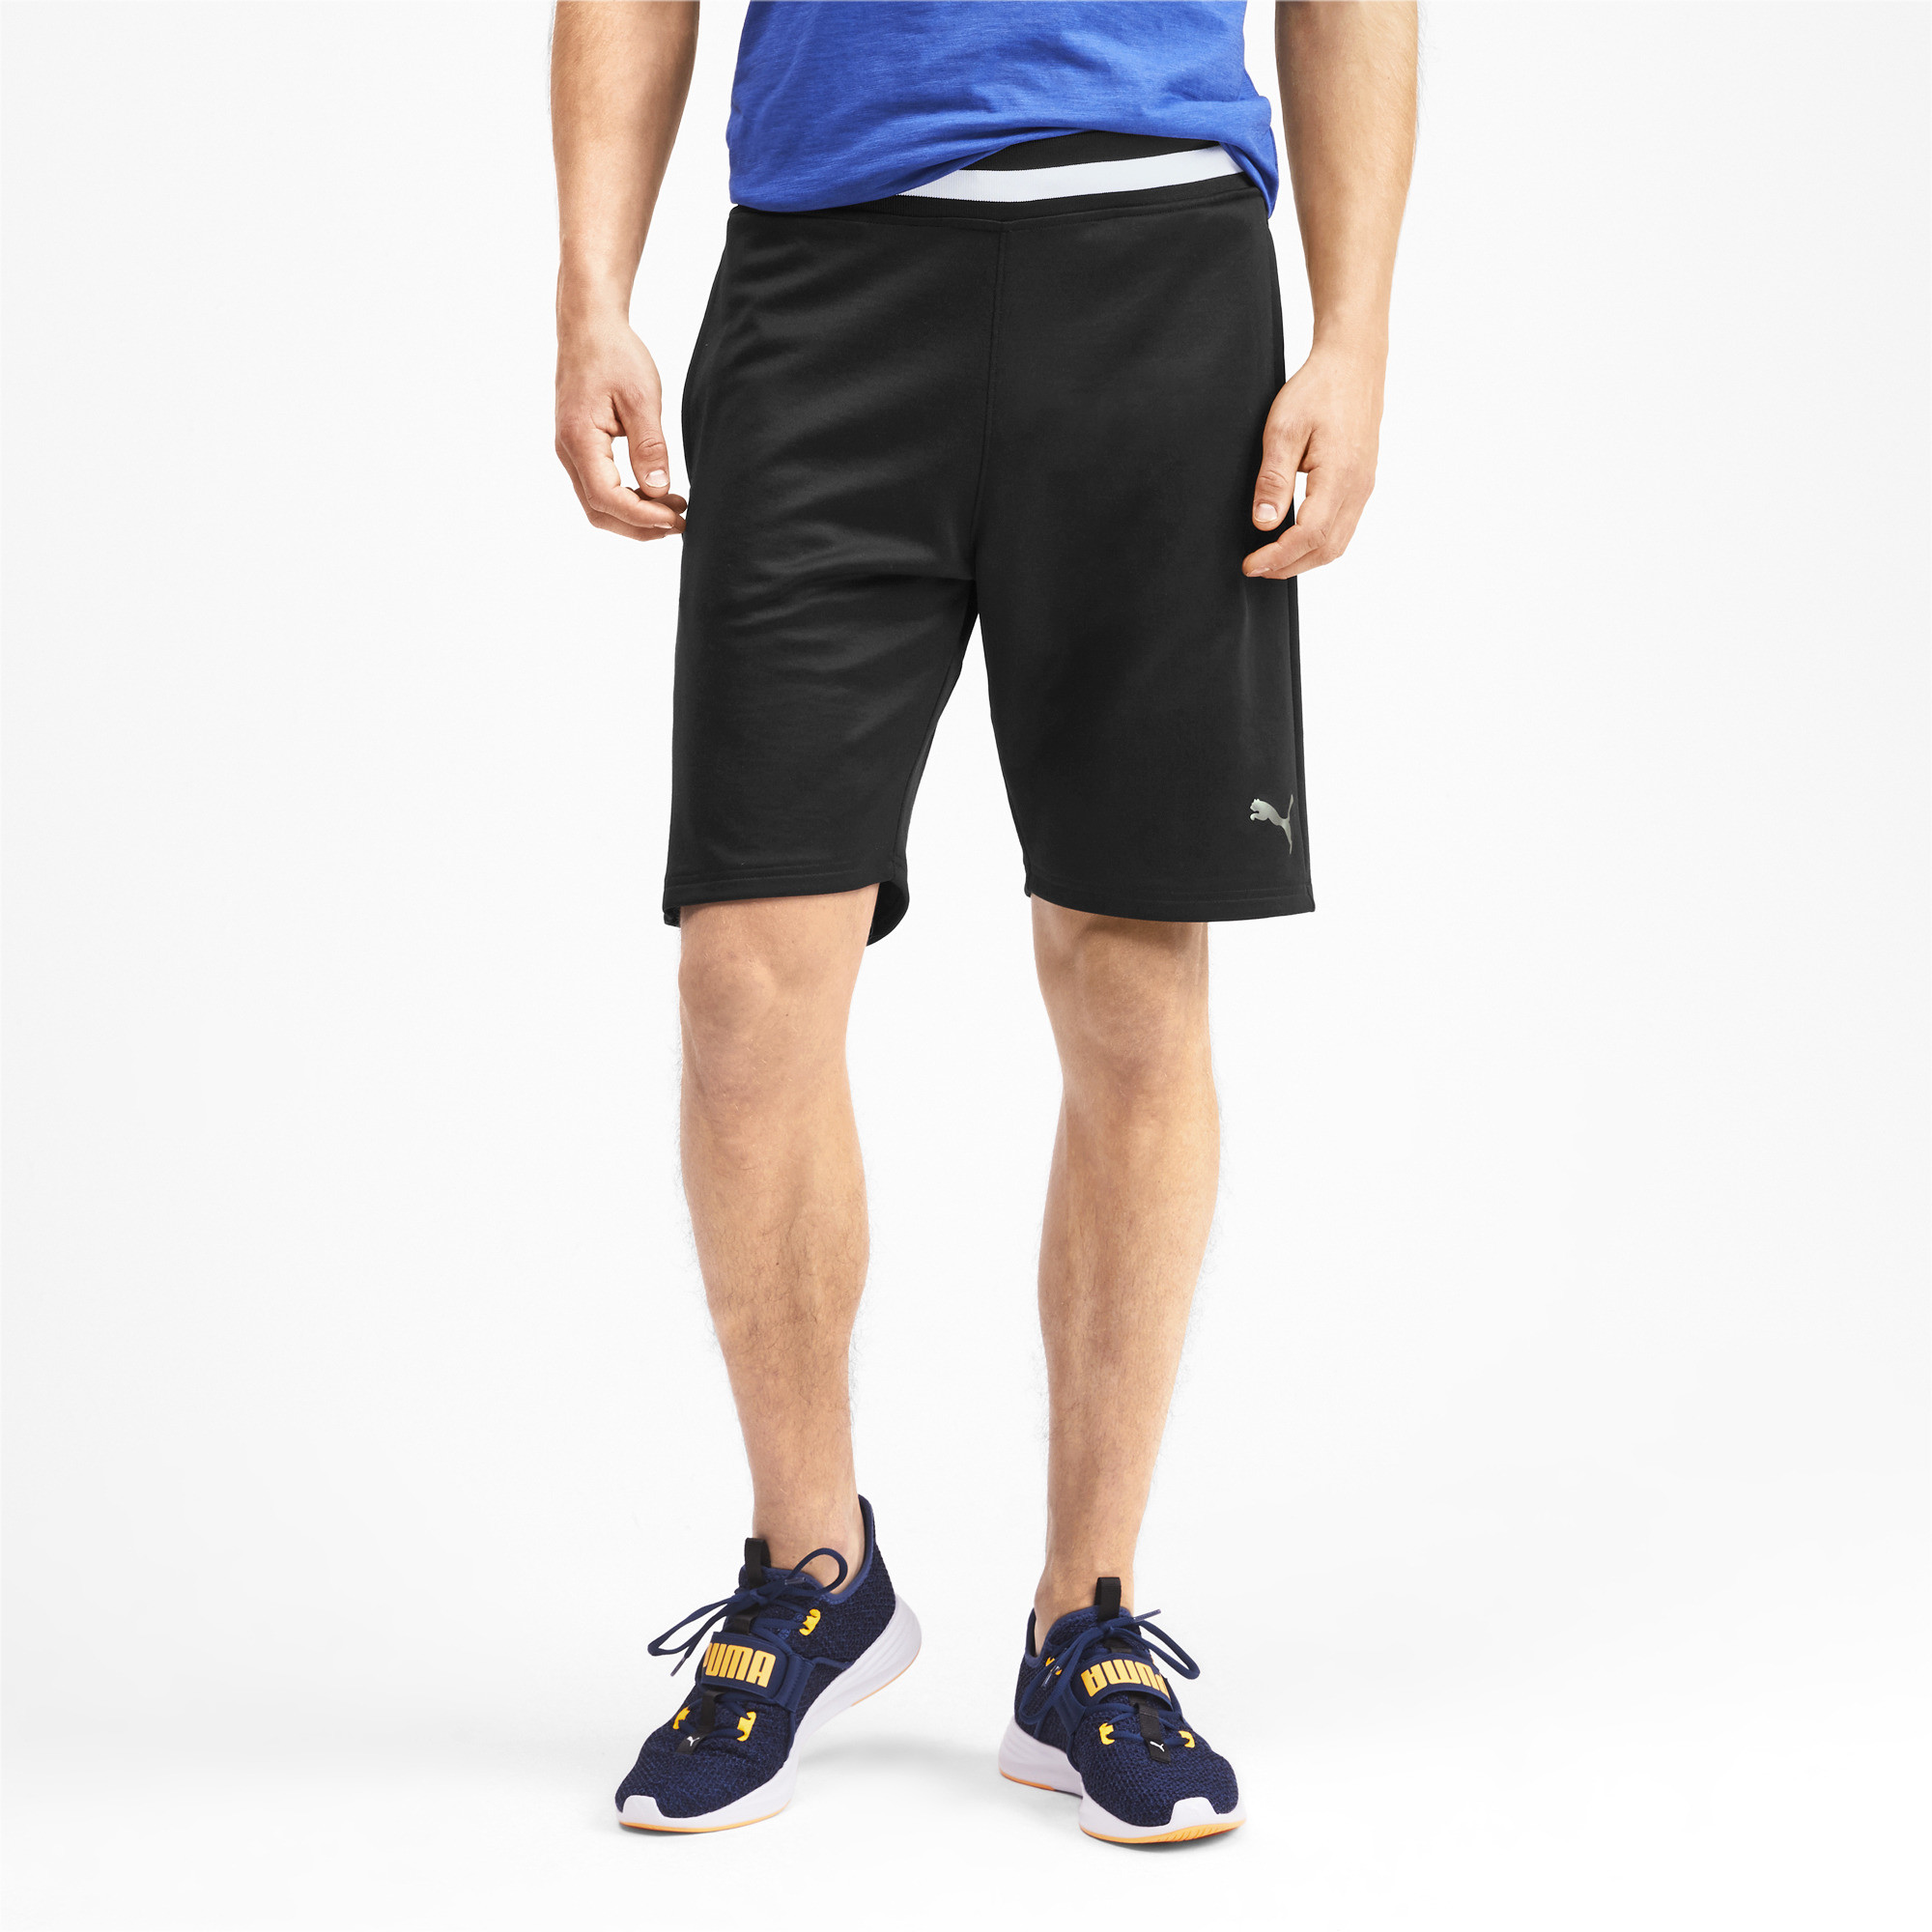 PUMA-Collective-Men-039-s-Sweat-Shorts-Men-Knitted-Shorts-Training thumbnail 4